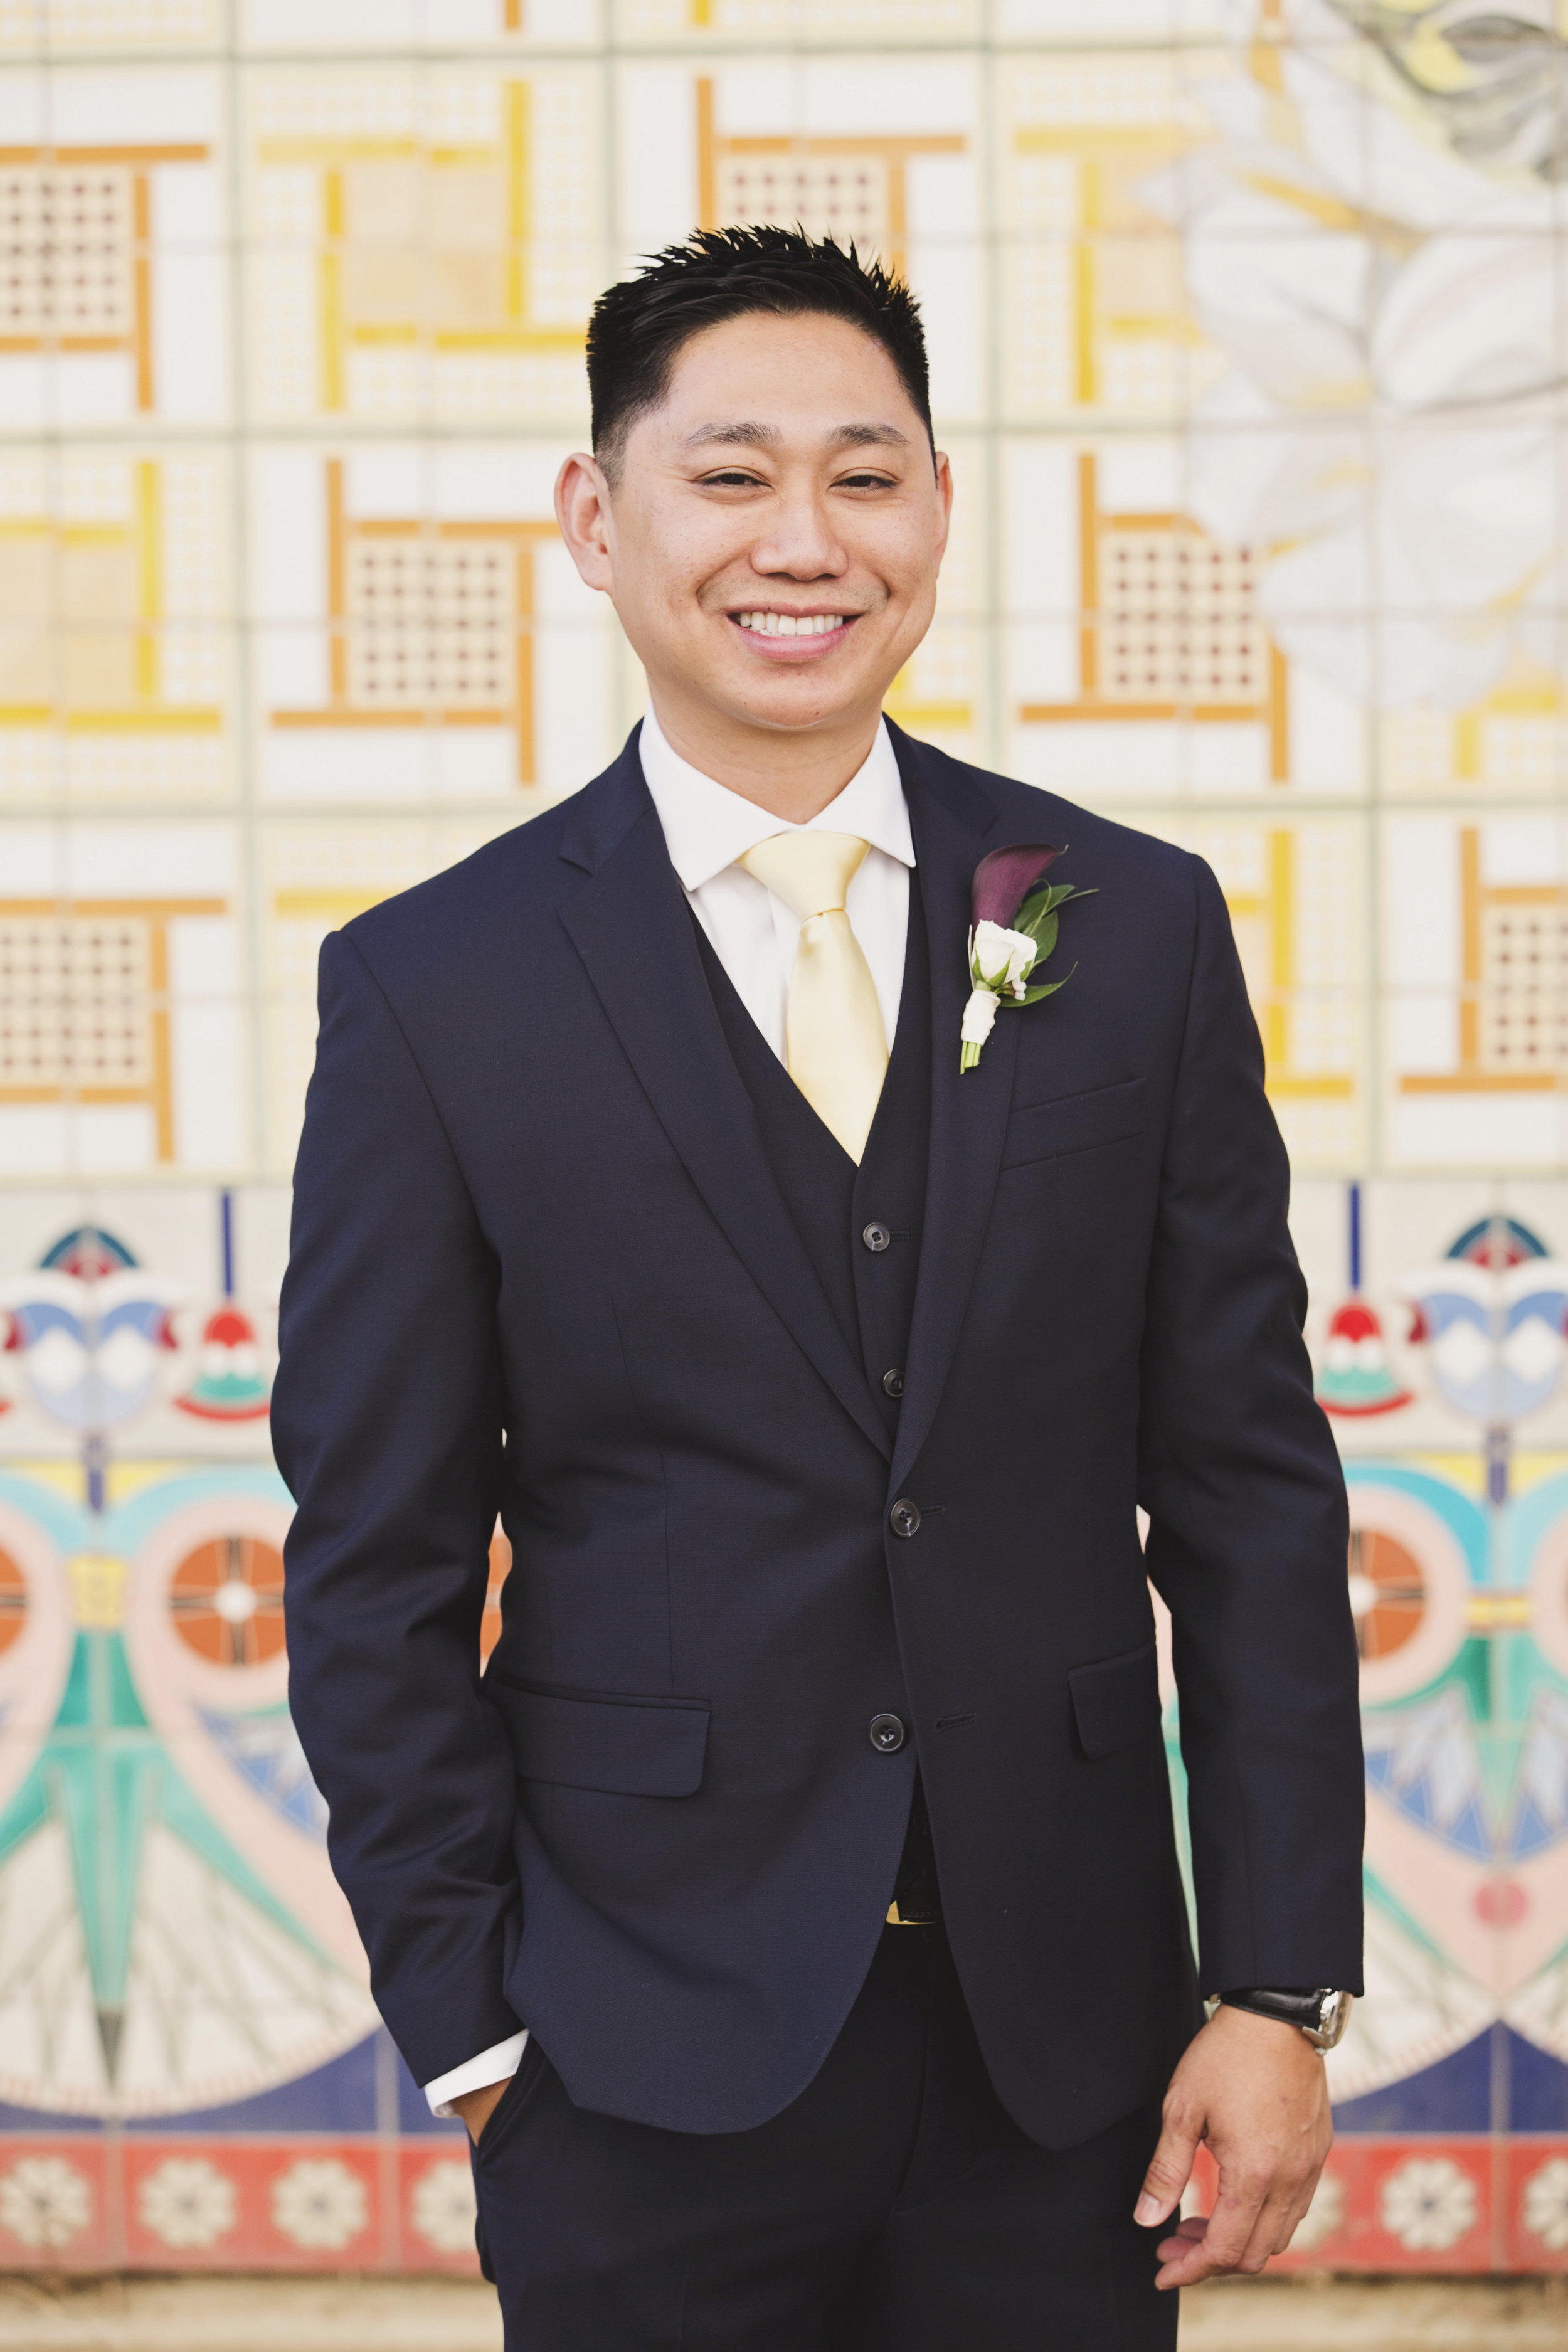 Beautiful Traditional Modern Chinese Wedding groom with simple red boutonniere.jpg